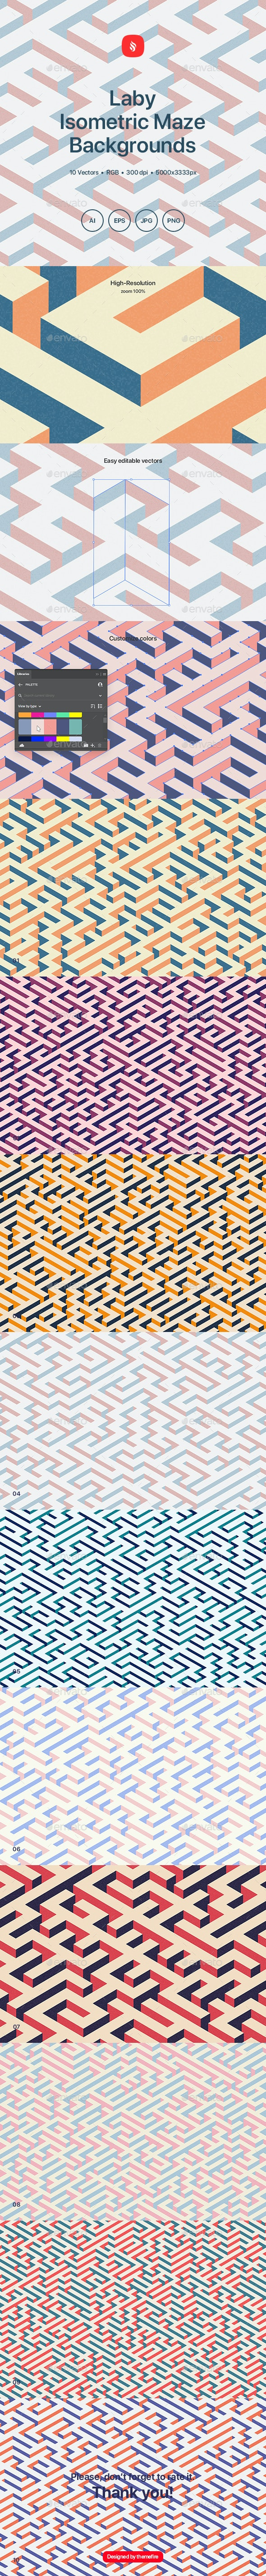 Laby - Isometric Maze Backgrounds - Patterns Backgrounds